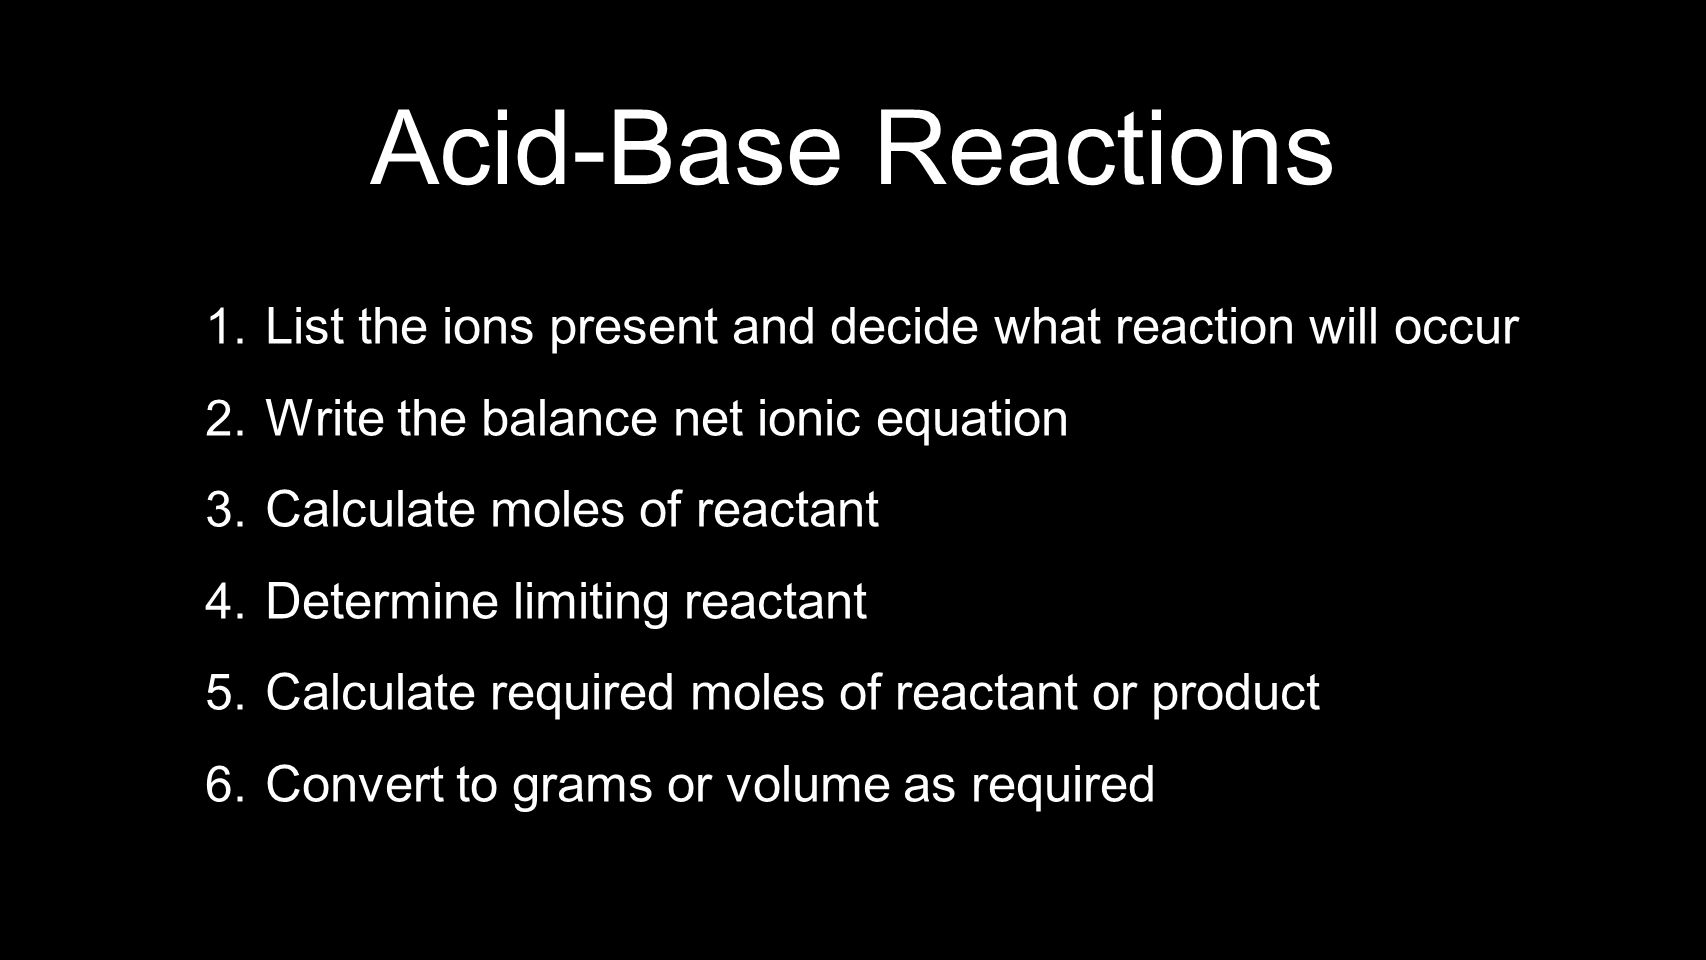 Acid-Base Reactions List the ions present and decide what reaction will occur. Write the balance net ionic equation.